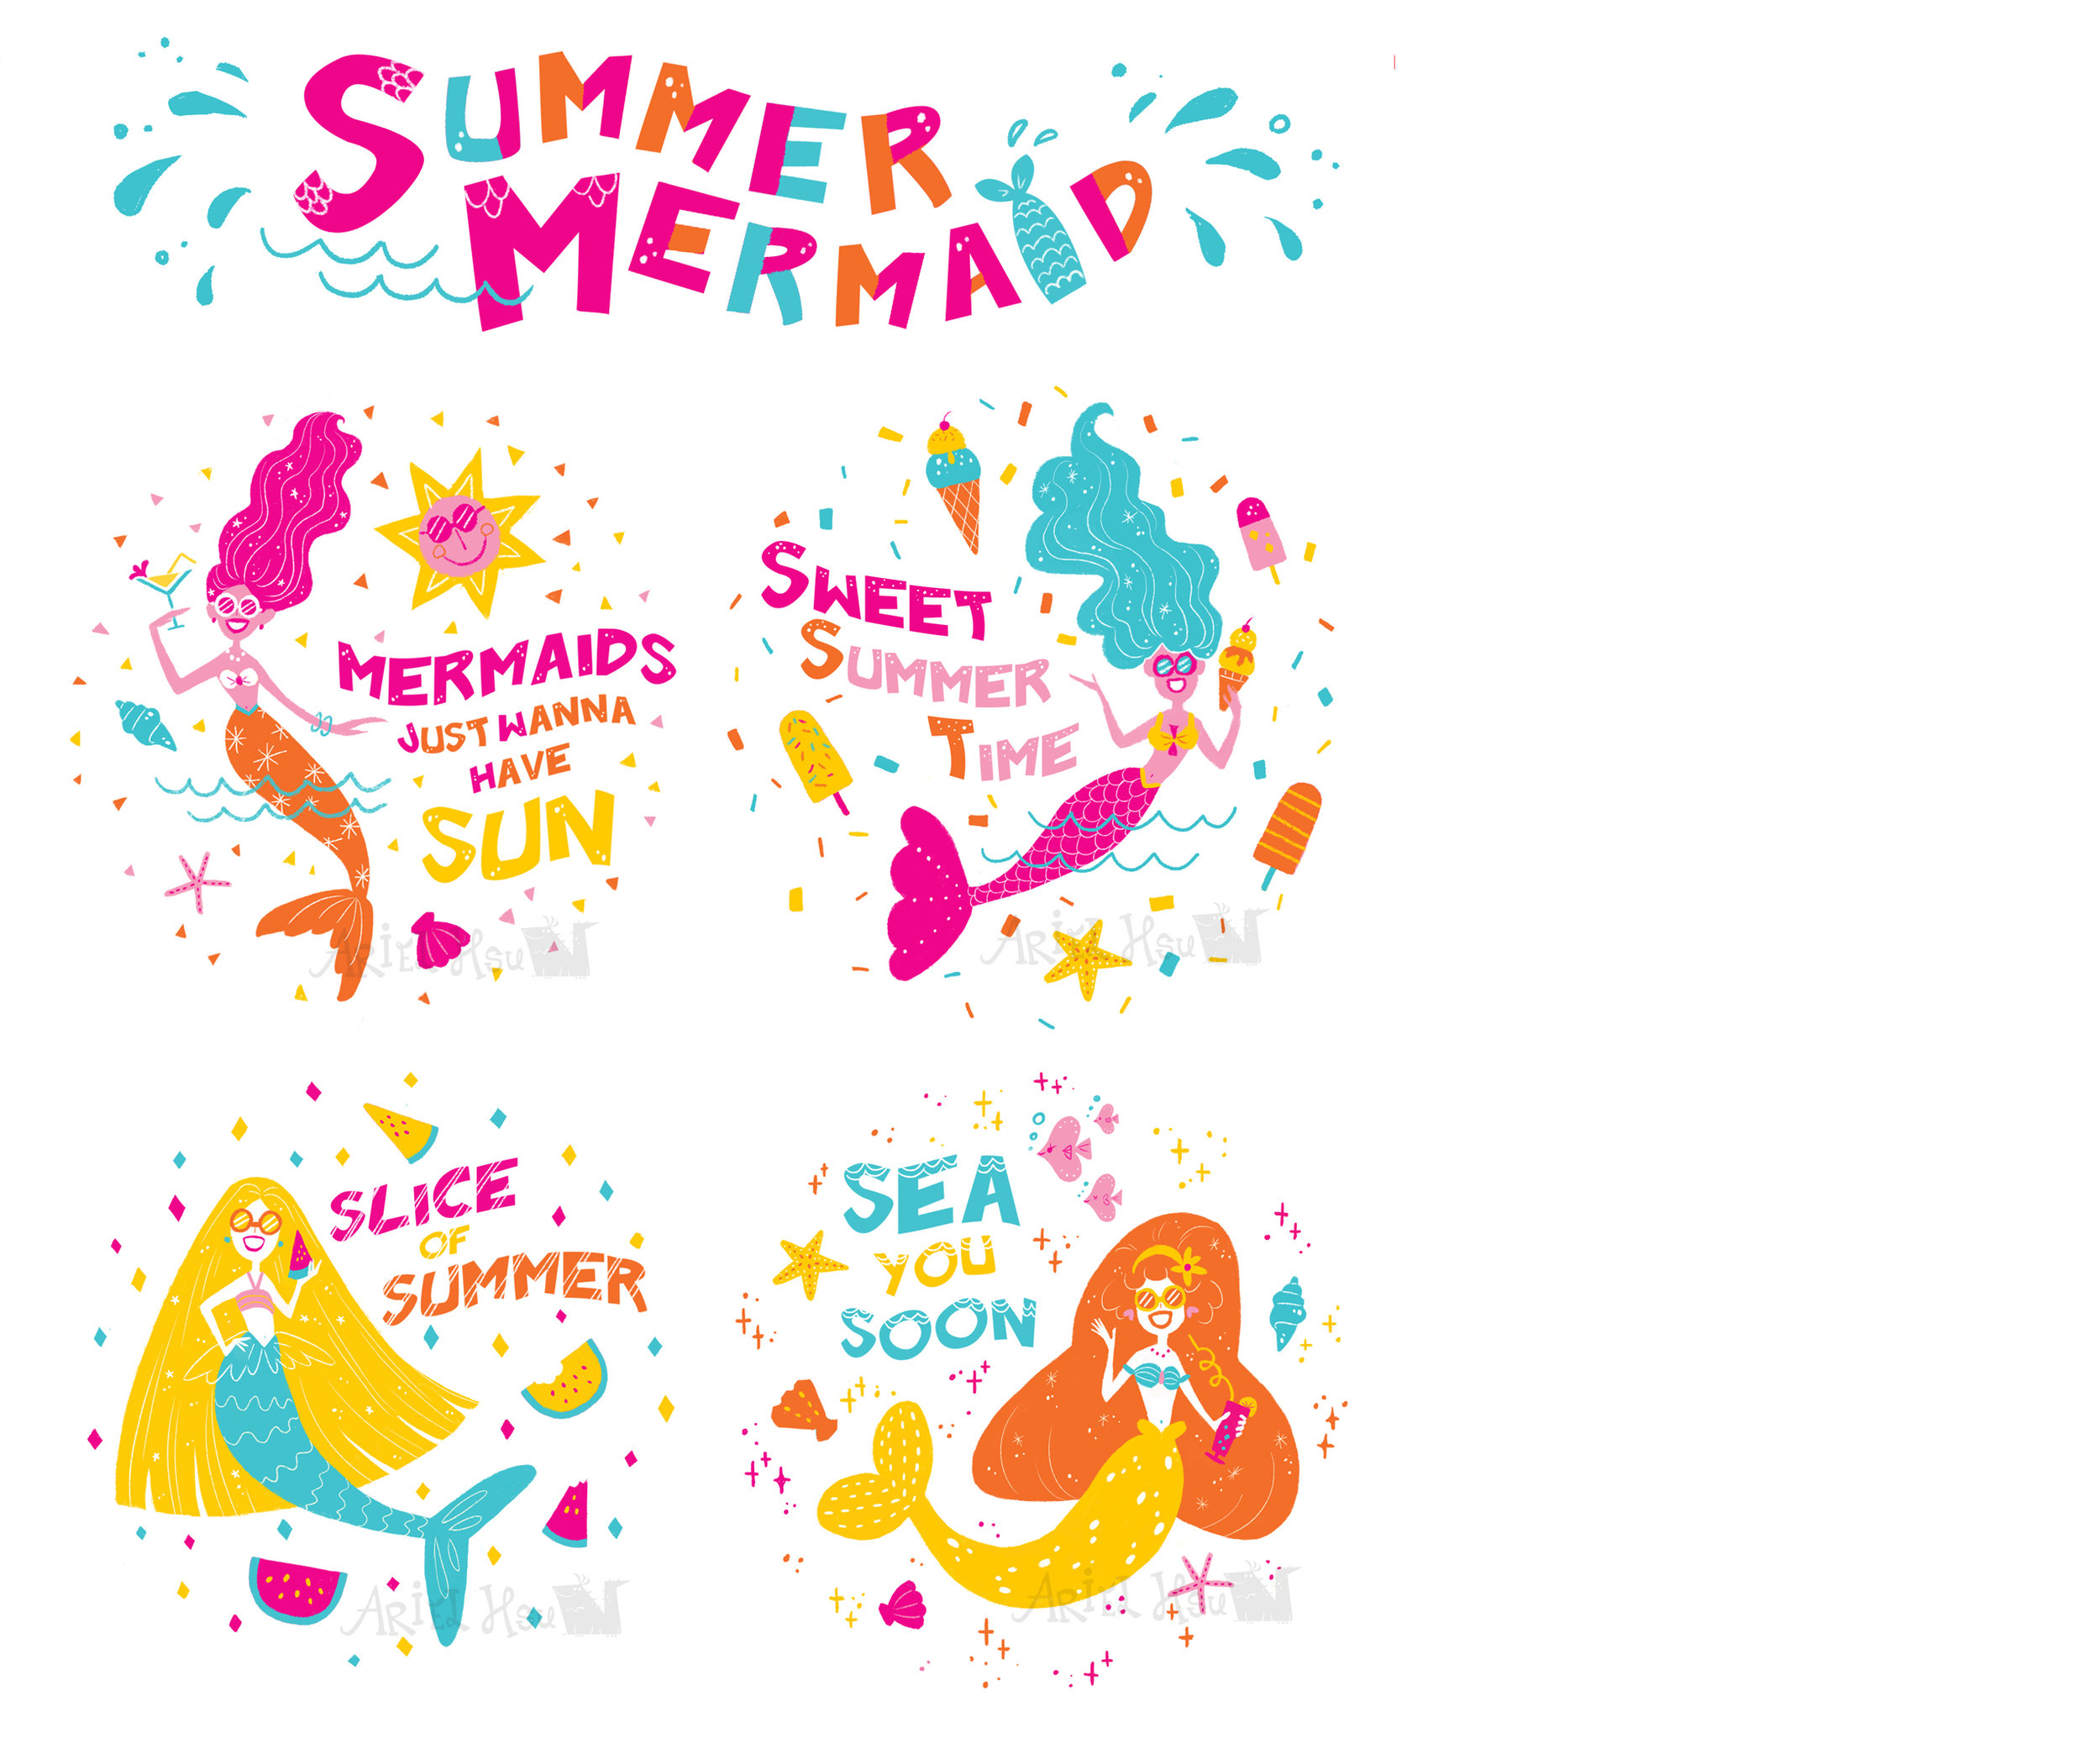 06_Summer Mermaid_small02.jpg